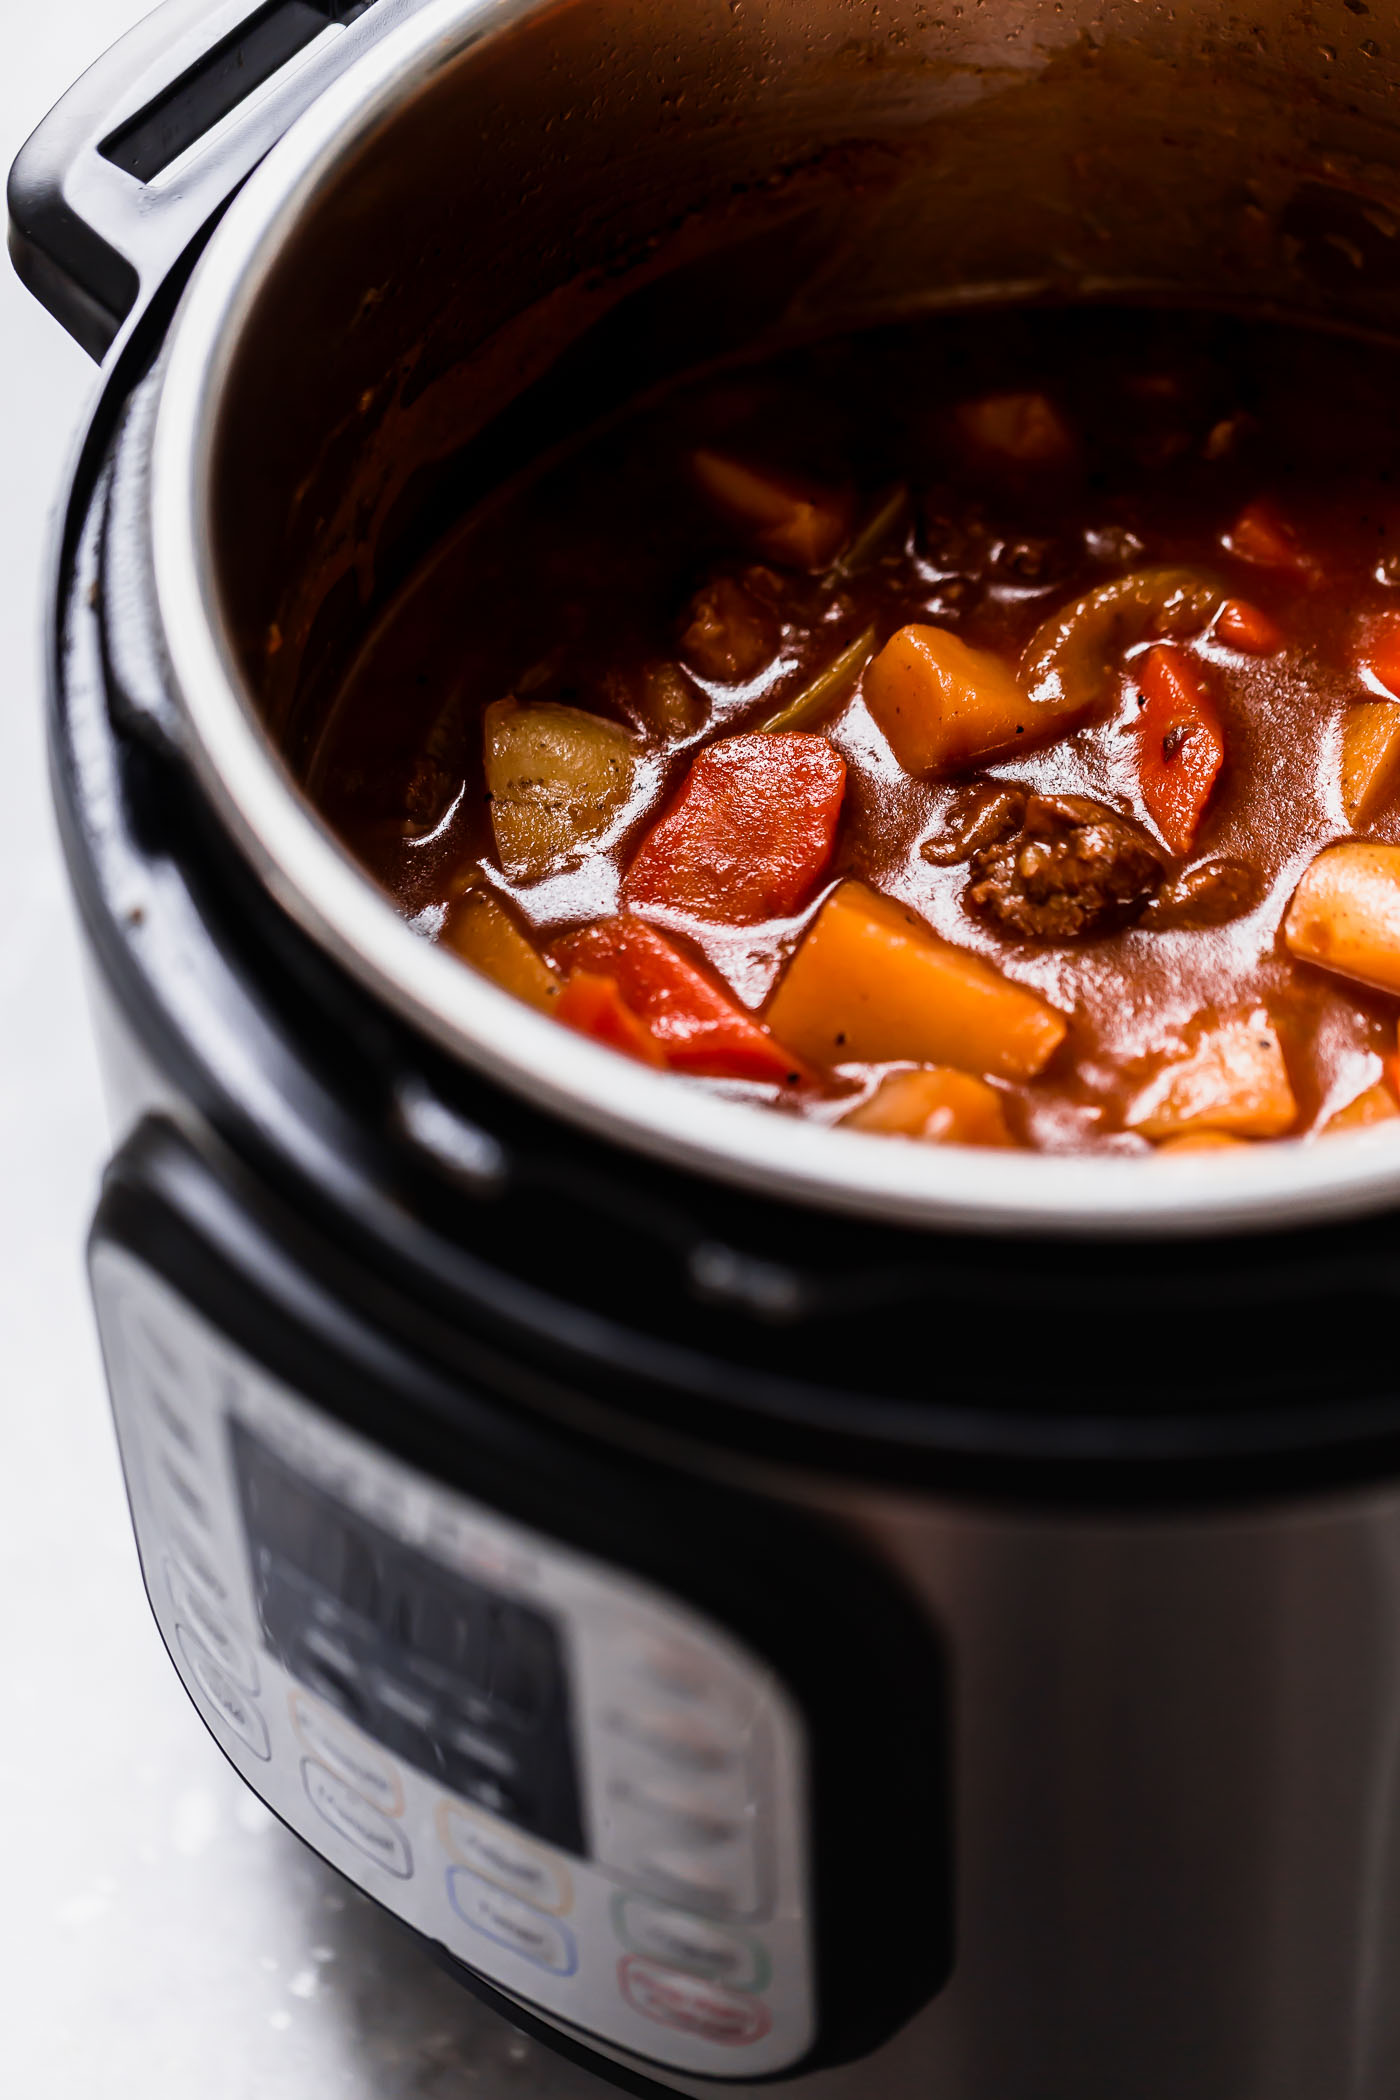 instant pot hawaiian beef stew. my hawaiian grandpa's famous island beef stew, made in the instant pot for extra convenience! this instant pot hawaiian beef stew is total comfort food: a tangy & rich tomato gravy filled with perfectly tender pieces of beef, onions, carrots, & potatoes. served over a bed of sticky rice, this instant pot hawaiian beef stew is the perfect comforting dinner! #playswellwithbutter #hawaiianbeefstew #instantpothawaiianbeefstew #beefstew #instantpotbeefstew #localhawaiianrecipe #authentichawaiianrecipe #easybeefstewrecipe #comfortfood #comfortfoodrecipes #comfortfooddinners